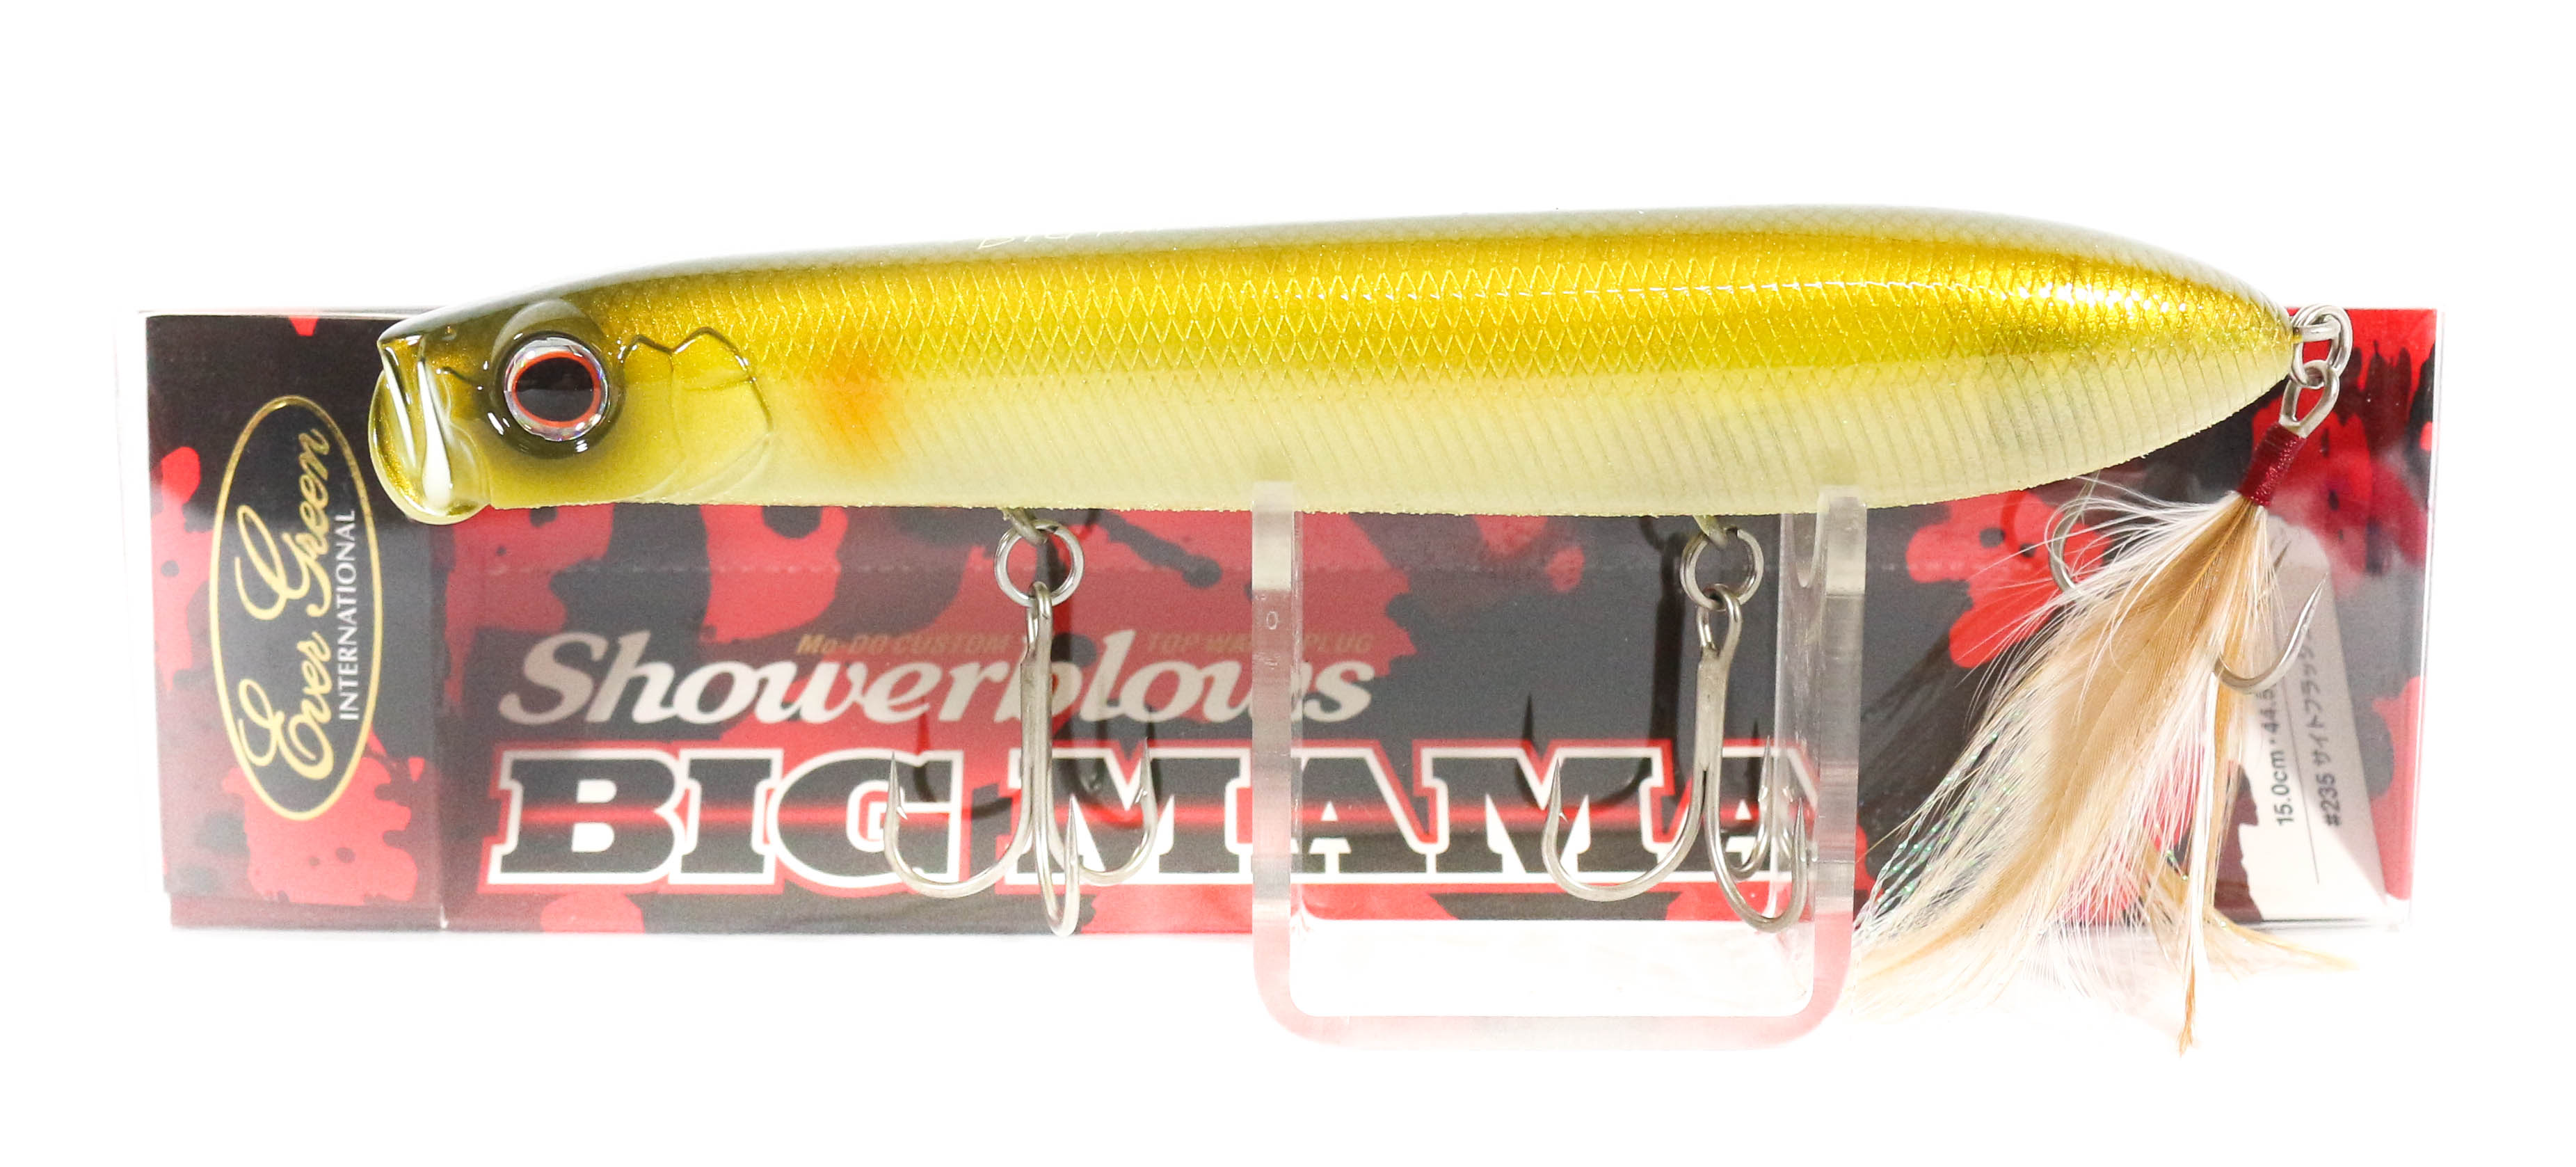 Evergreen Shower Blows Big Mama 150mm Pencil Floating Lure 27 (4274)